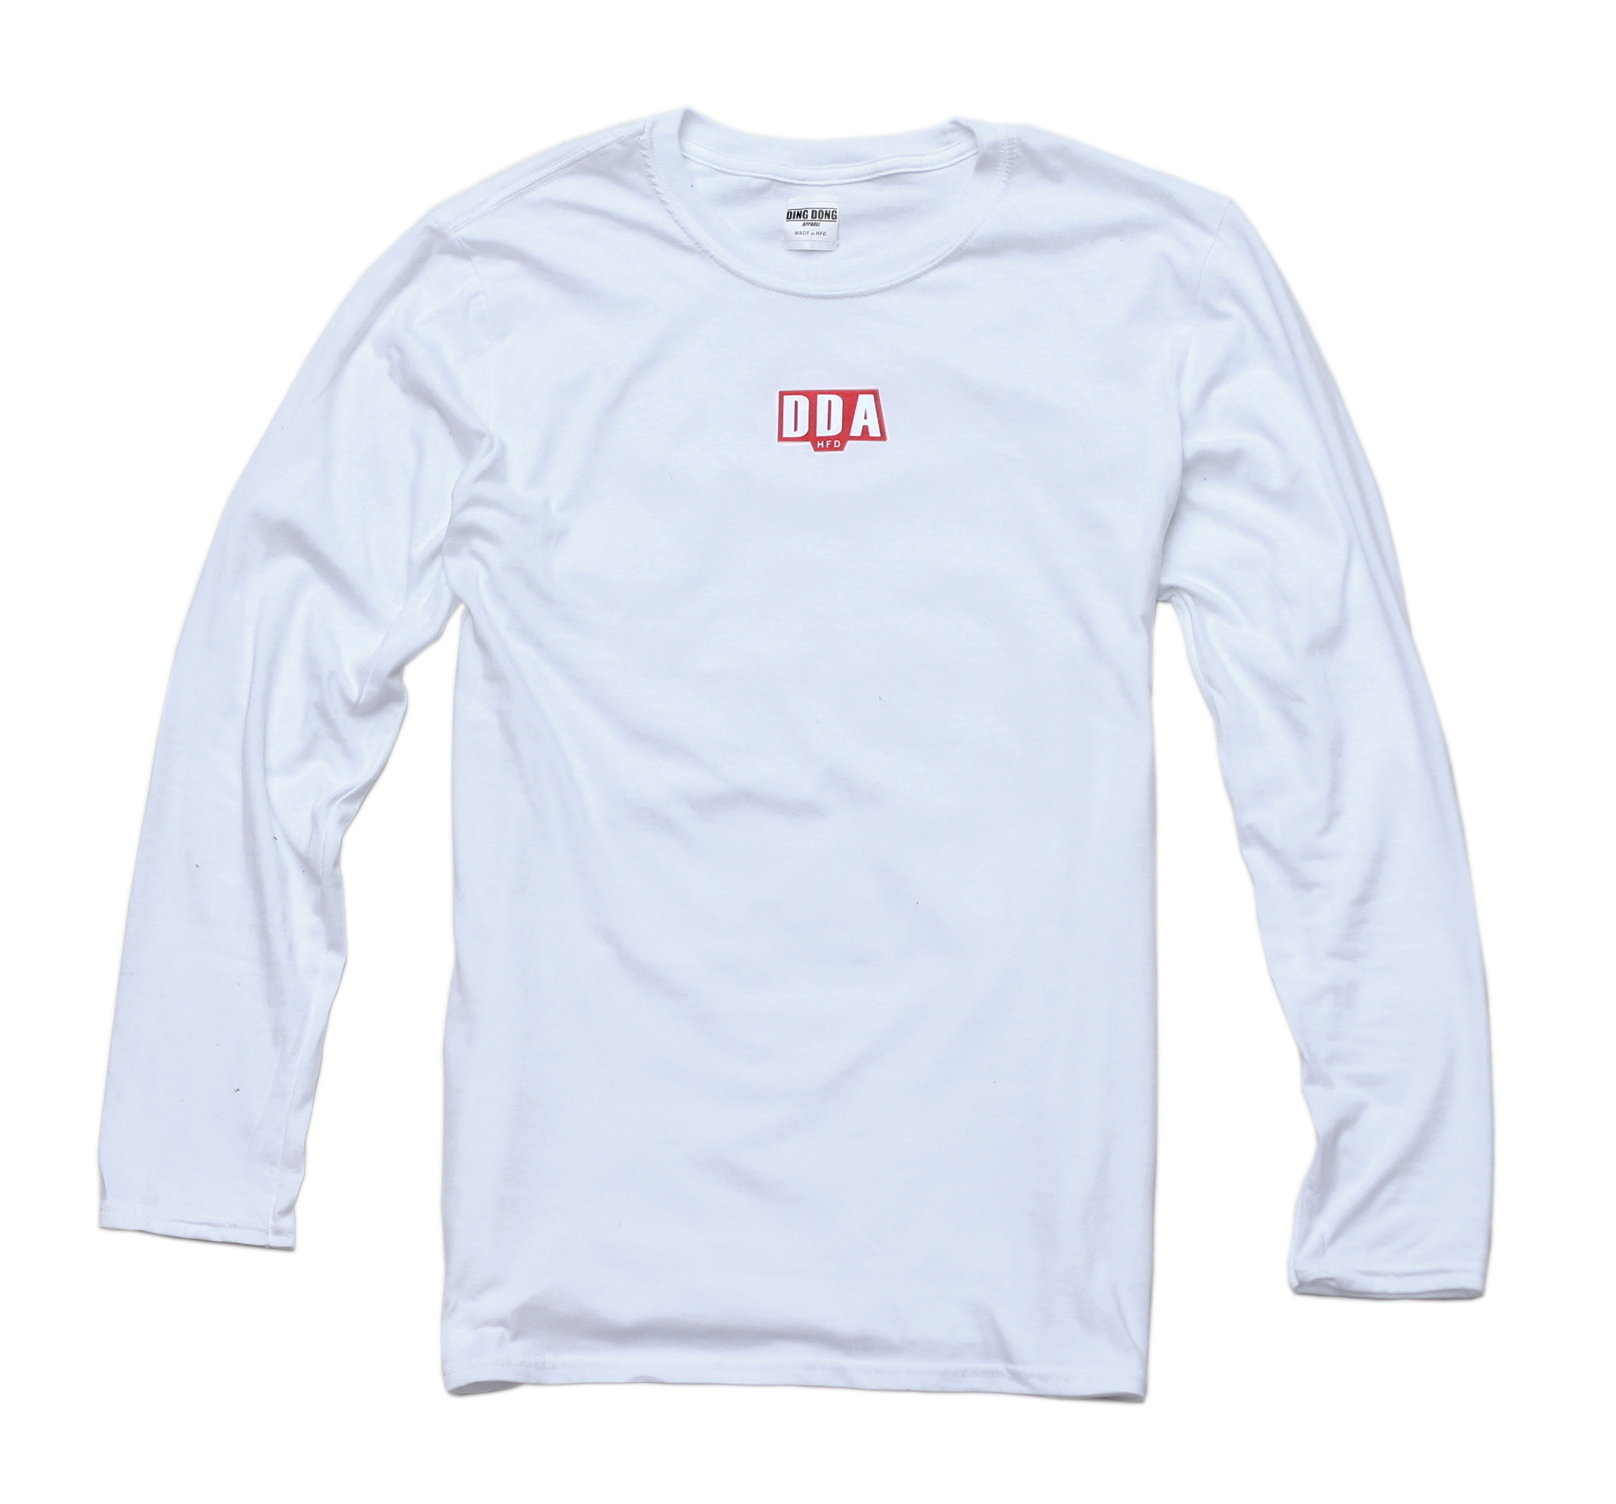 DDA Hfd LS Tee - White/Red 00004